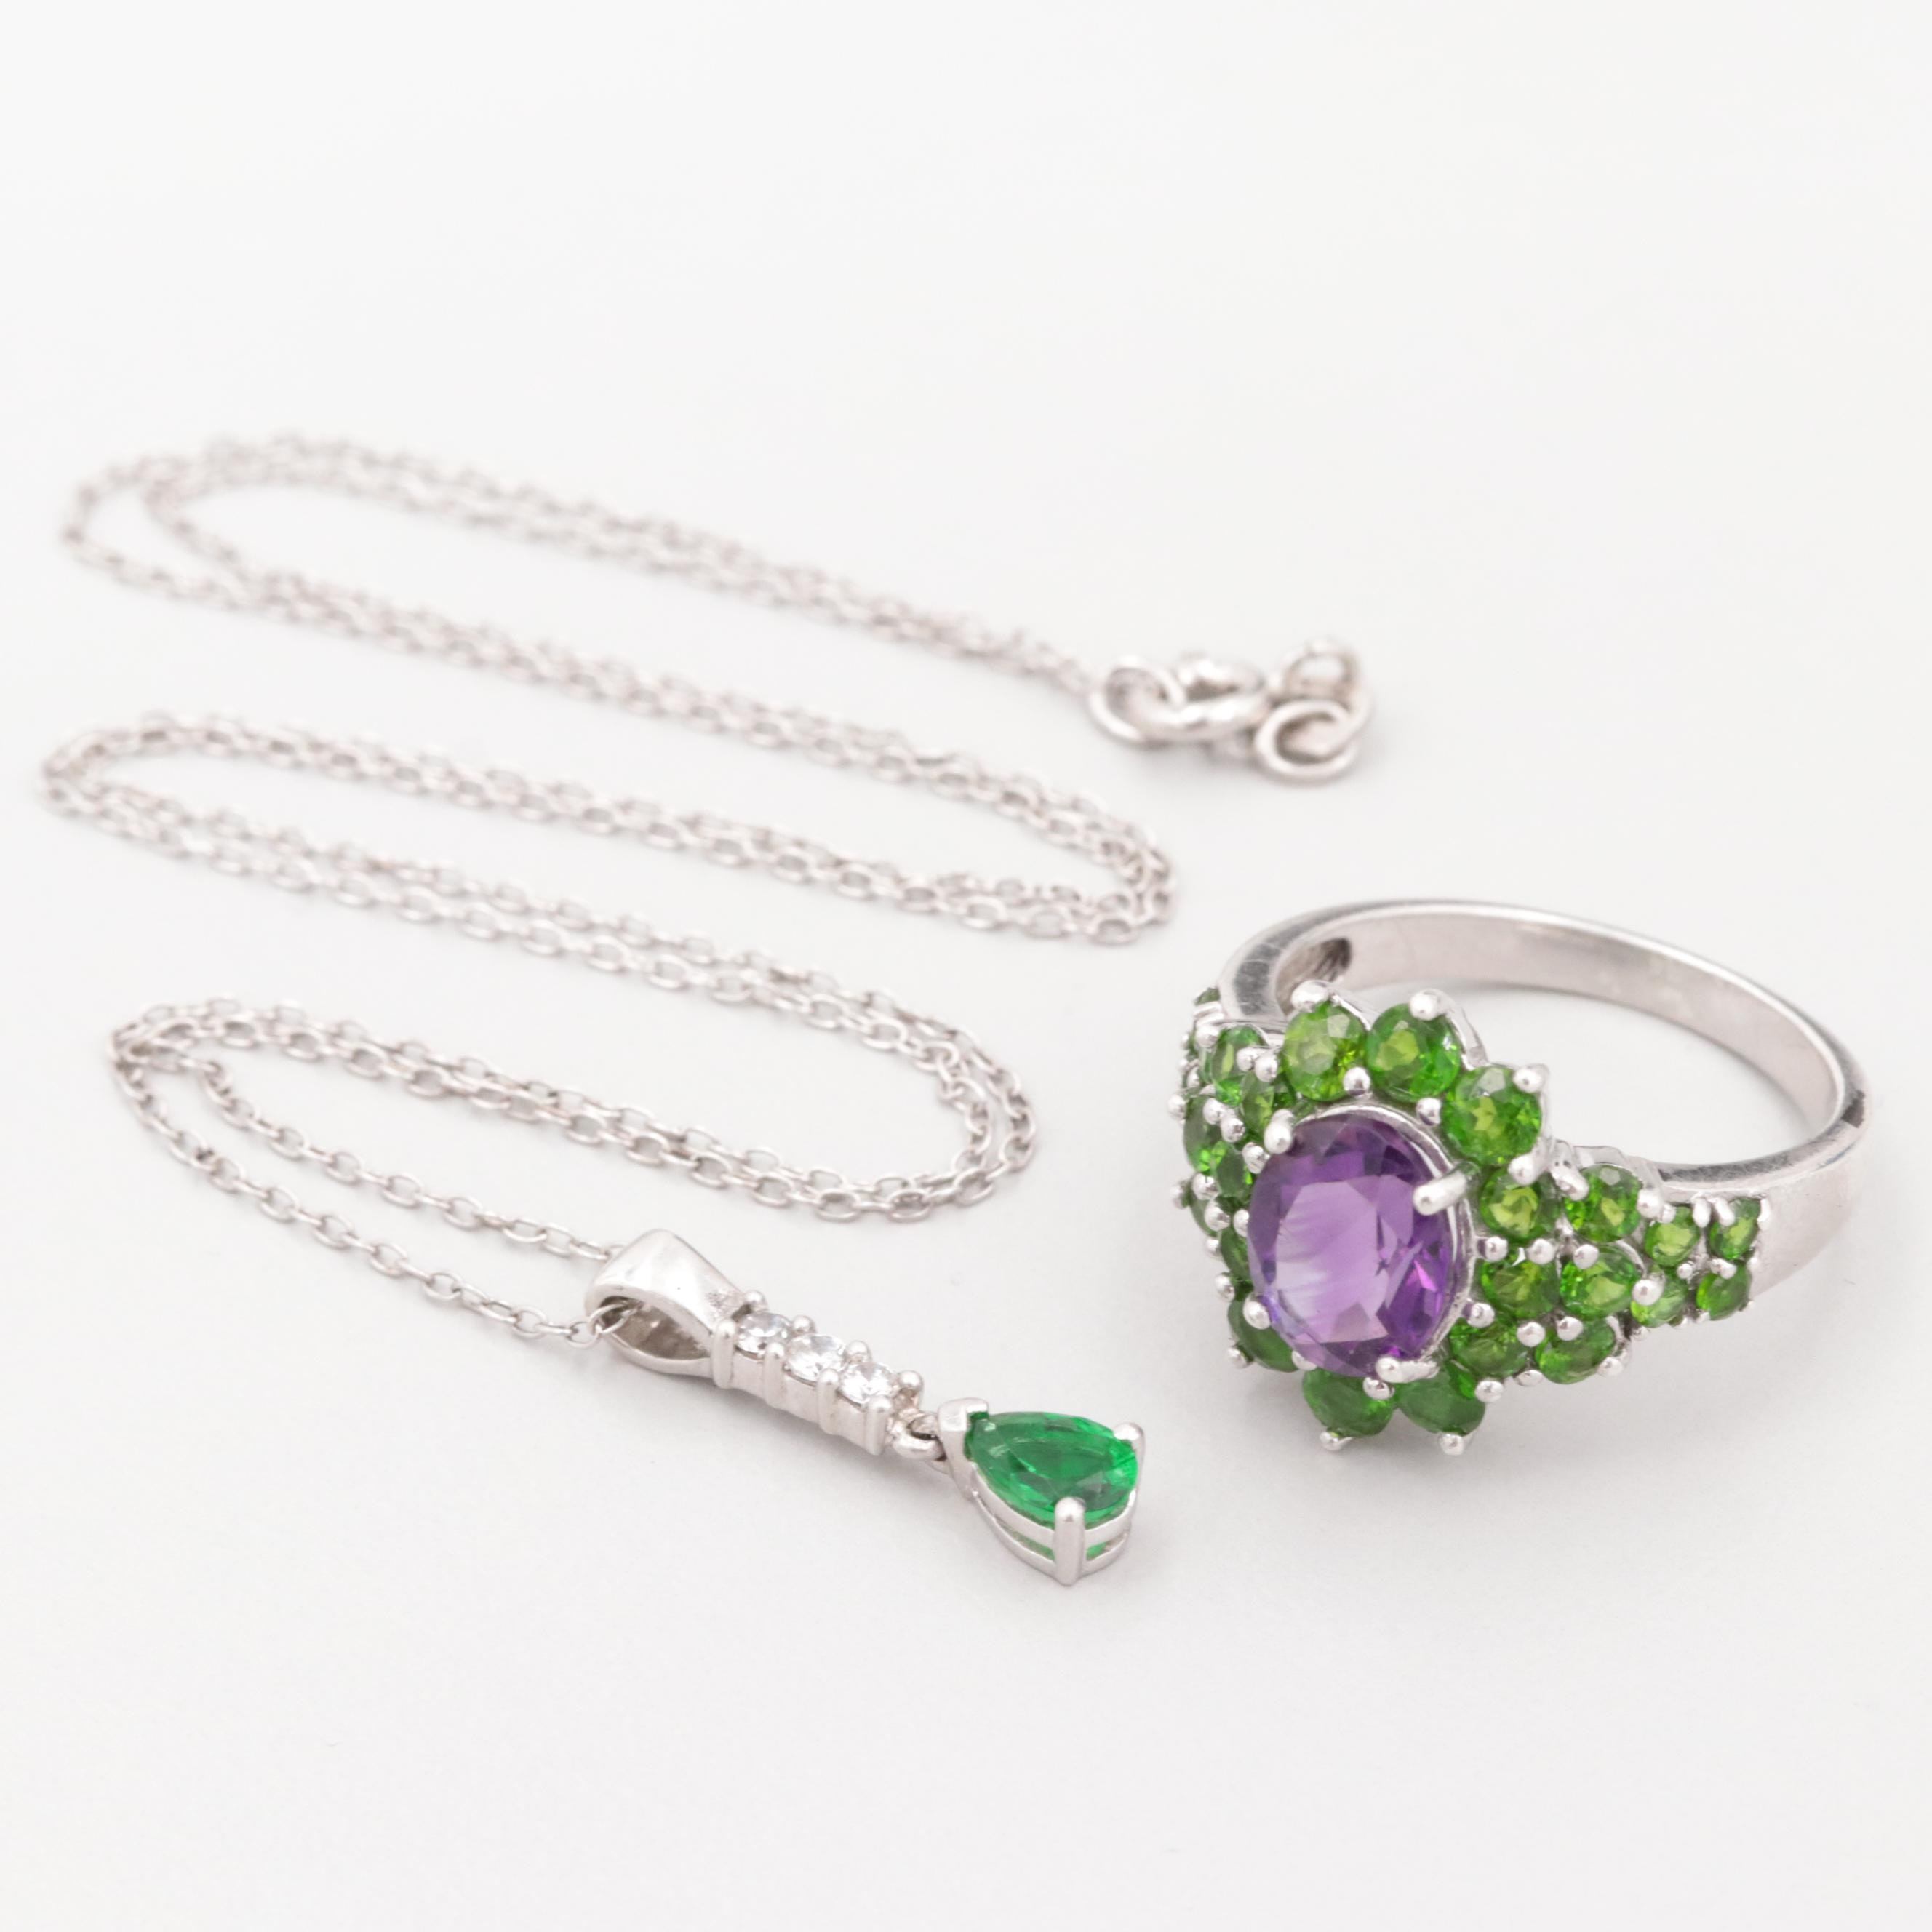 Sterling Silver Amethyst and Diopside Ring and Cubic Zirconia Necklace